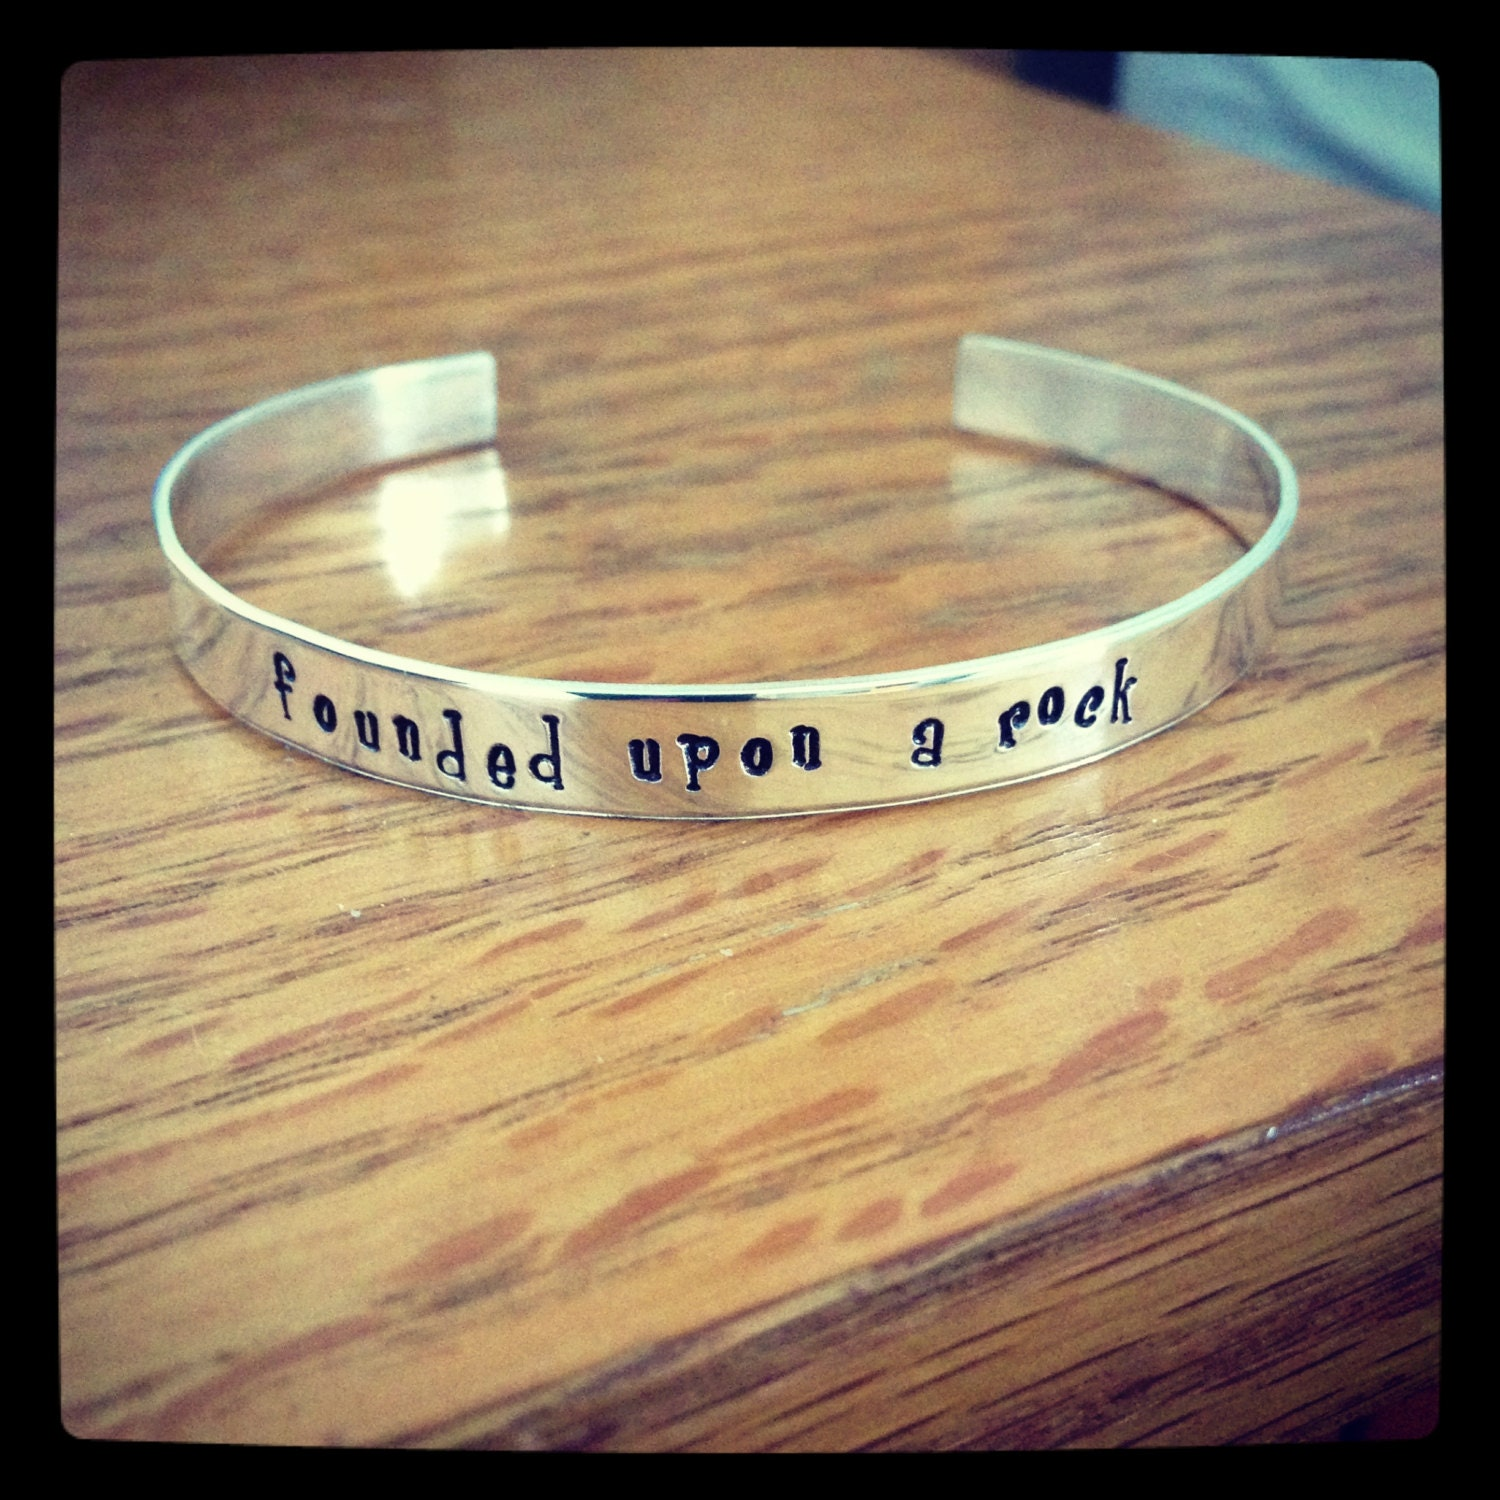 Founded Upon A Rock Hand Stamped Sterling Silver Cuff Bracelet Gamma Phi Beta